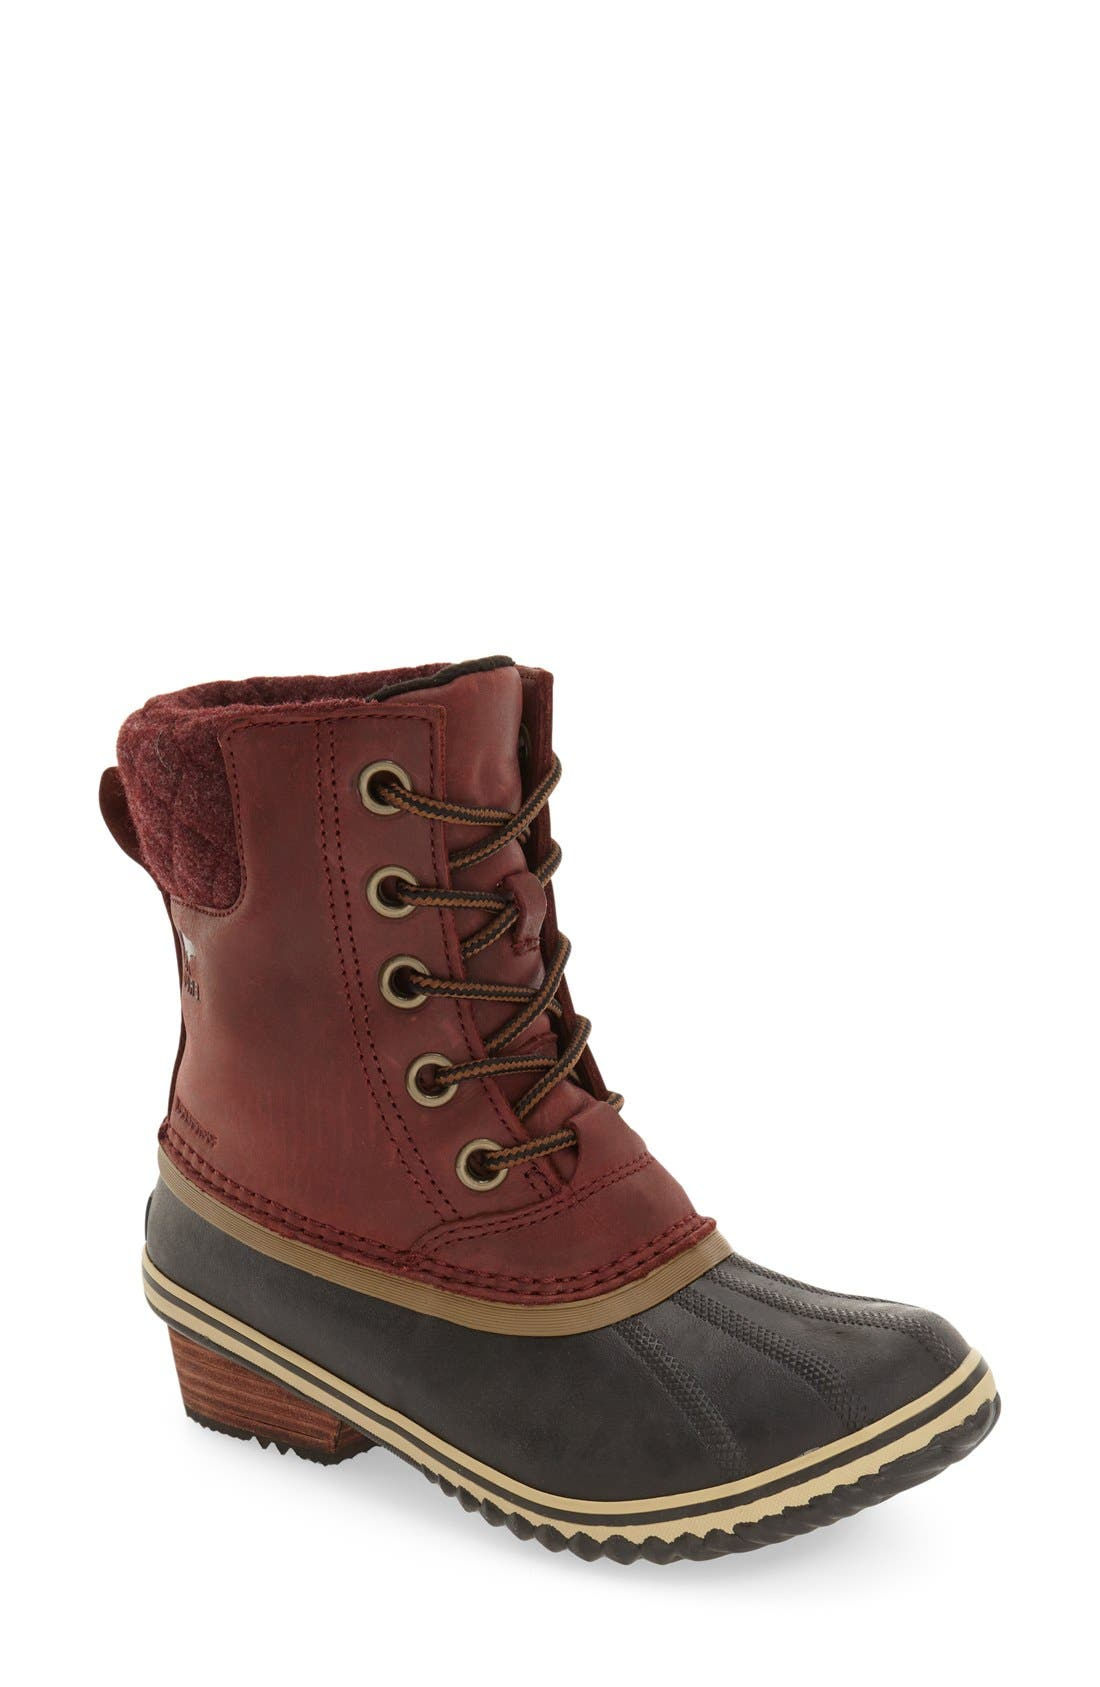 Alternate Image 1 Selected - SOREL Slimpack II Waterproof Boot (Women)